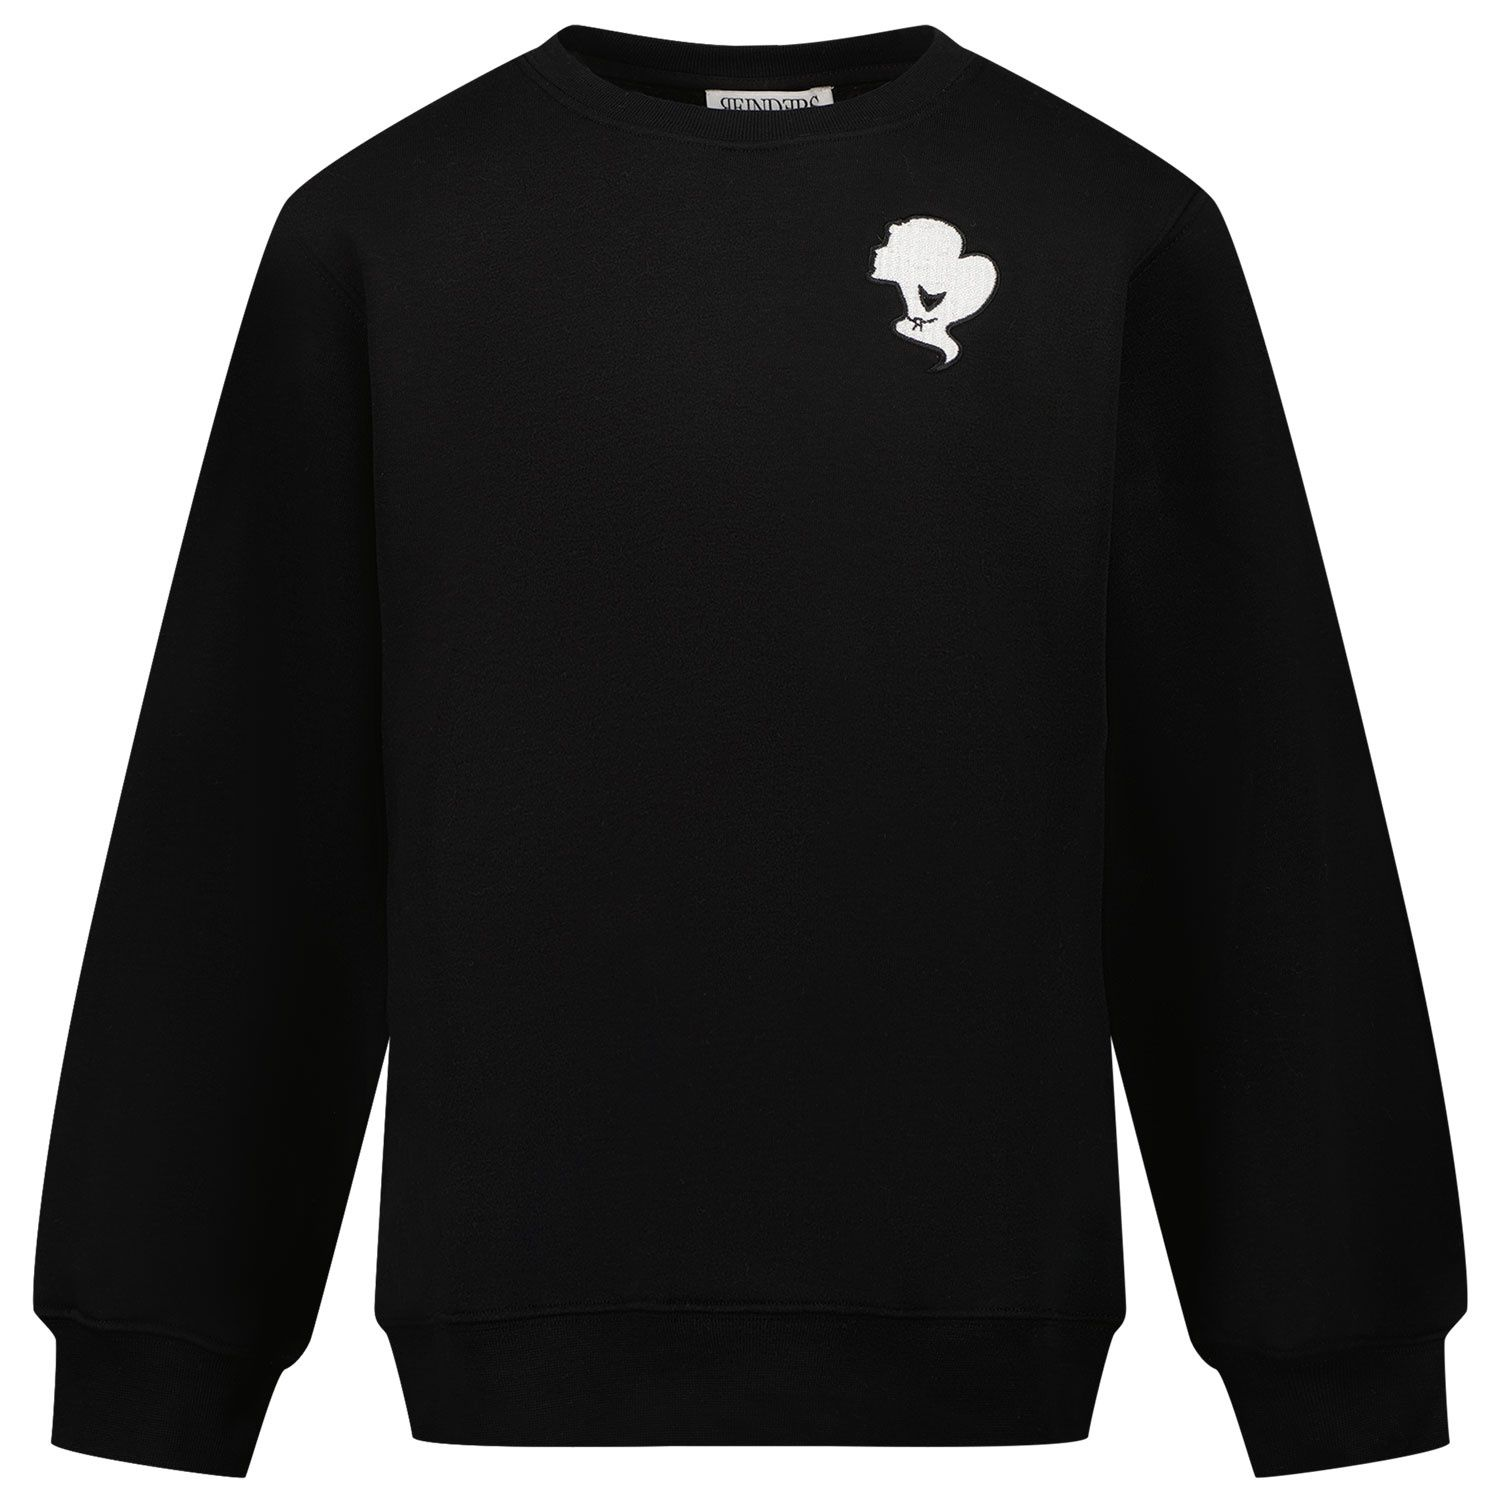 Picture of Reinders G2466 kids sweater black